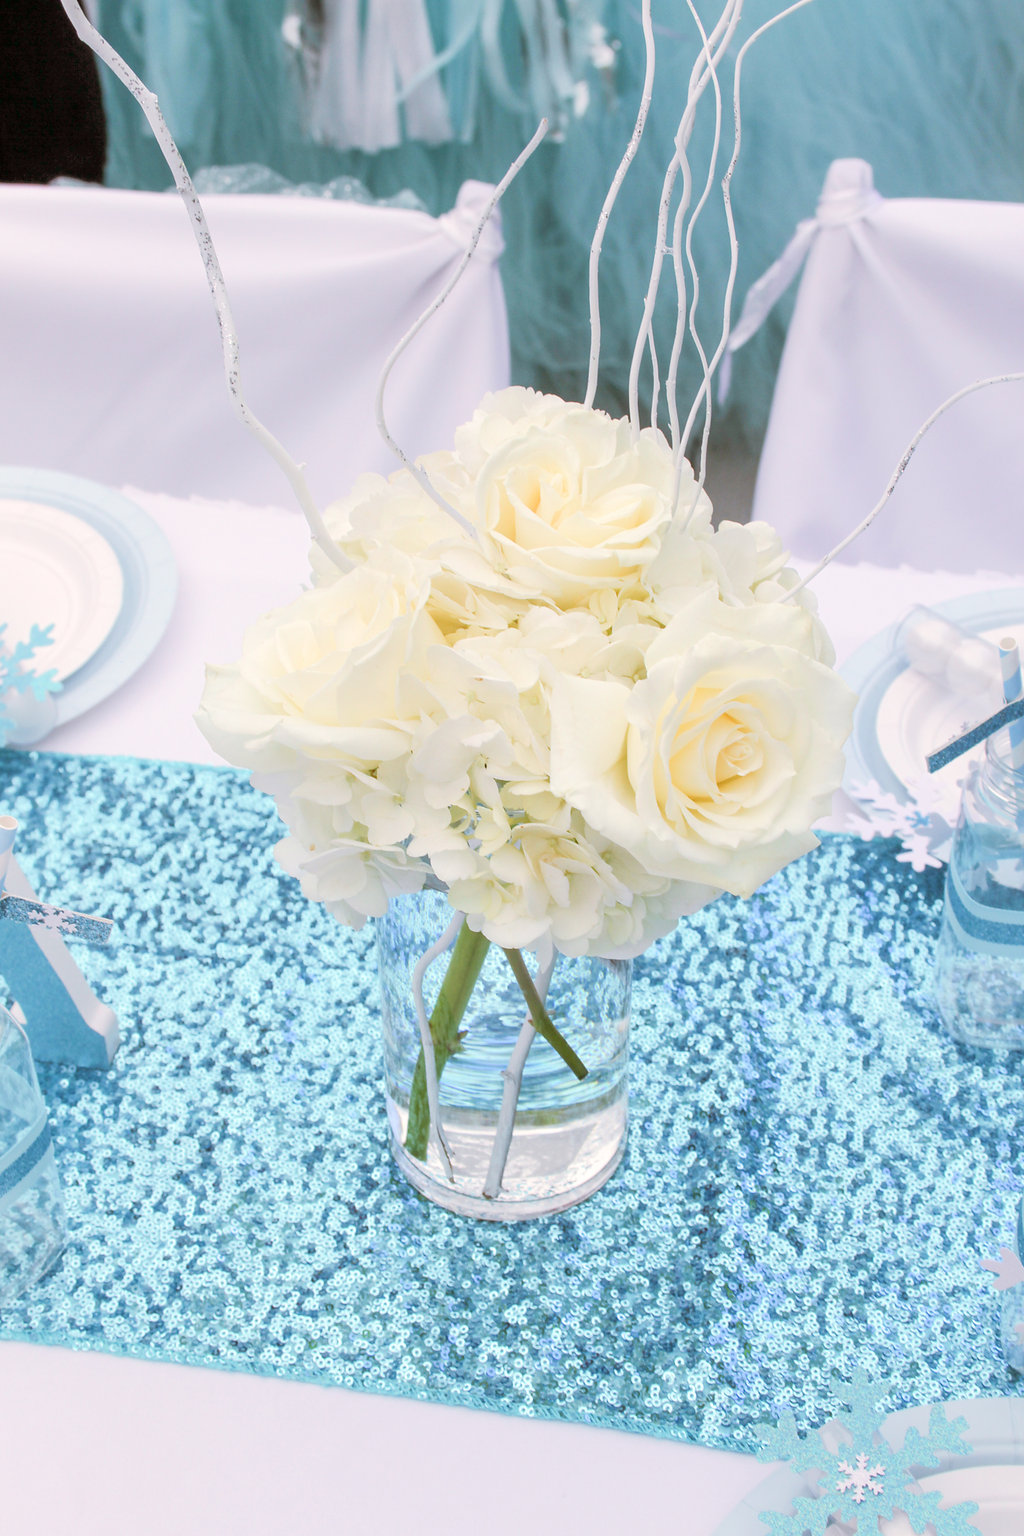 sweetly chic events & design frozen party floral centerpieces